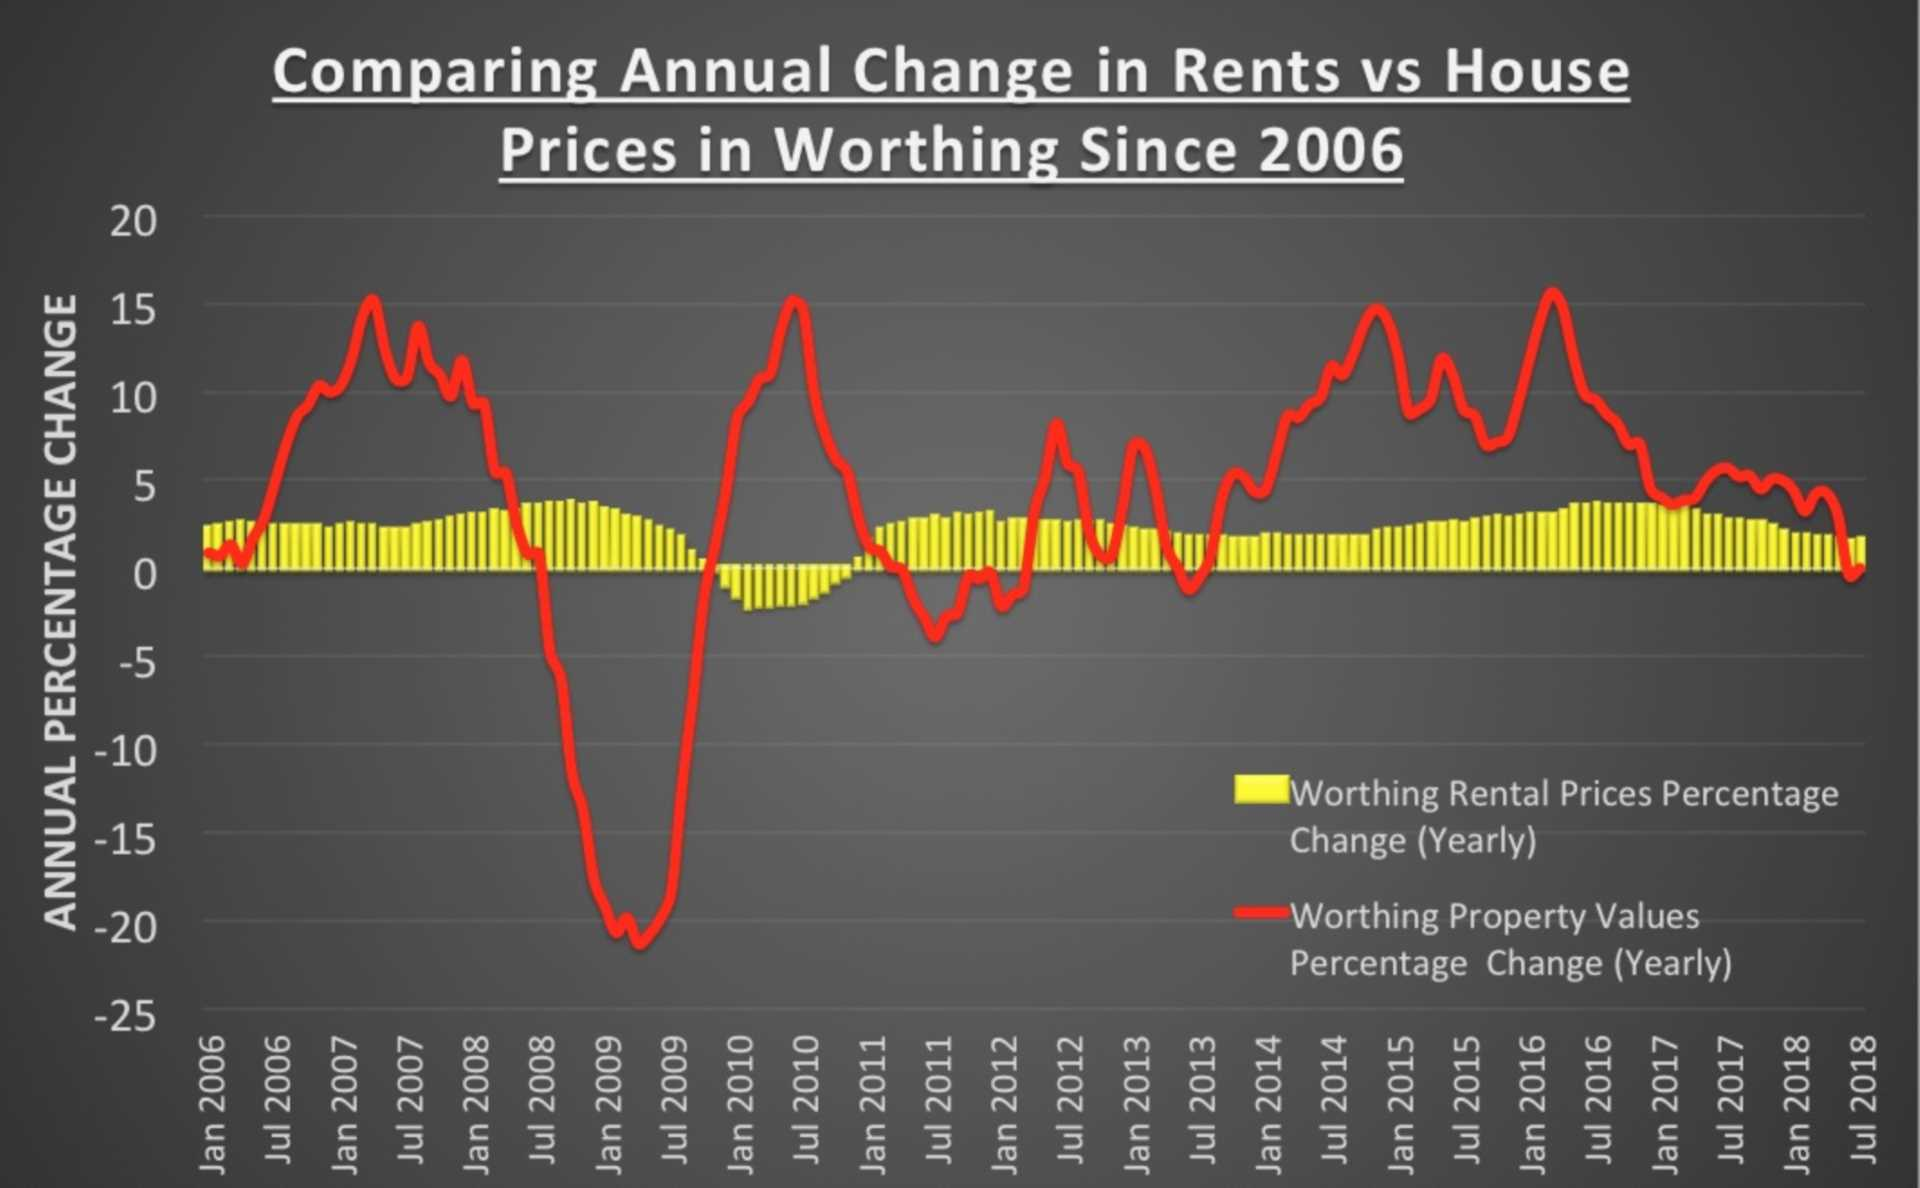 Worthing House Prices Vs Worthing Rents Since 2006